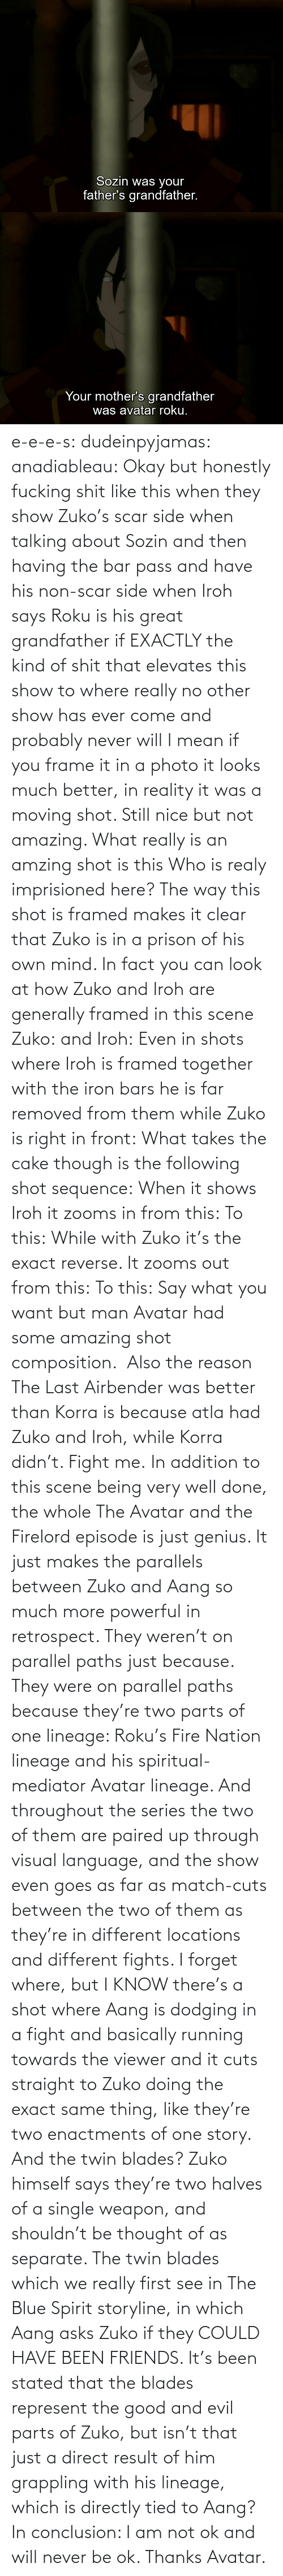 Reality: e-e-e-s: dudeinpyjamas:   anadiableau: Okay but honestly fucking shit like this when they show Zuko's scar side when talking about Sozin and then having the bar pass and have his non-scar side when Iroh says Roku is his great grandfather if EXACTLY the kind of shit that elevates this show to where really no other show has ever come and probably never will I mean if you frame it in a photo it looks much better, in reality it was a moving shot. Still nice but not amazing. What really is an amzing shot is this Who is realy imprisioned here? The way this shot is framed makes it clear that Zuko is in a prison of his own mind. In fact you can look at how Zuko and Iroh are generally framed in this scene Zuko: and Iroh: Even in shots where Iroh is framed together with the iron bars he is far removed from them while Zuko is right in front:  What takes the cake though is the following shot sequence: When it shows Iroh it zooms in from this: To this: While with Zuko it's the exact reverse. It zooms out from this: To this: Say what you want but man Avatar had some amazing shot composition.   Also the reason The Last Airbender was better than Korra is because atla had Zuko and Iroh, while Korra didn't. Fight me.    In addition to this scene being very well done, the whole The Avatar and the Firelord episode is just genius.  It just makes the parallels between Zuko and Aang so much more powerful in retrospect.  They weren't on parallel paths just because.  They were on parallel paths because they're two parts of one lineage: Roku's Fire Nation lineage and his spiritual-mediator Avatar lineage.  And throughout the series the two of them are paired up through visual language, and the show even goes as far as match-cuts between the two of them as they're in different locations and different fights.  I forget where, but I KNOW there's a shot where Aang is dodging in a fight and basically running towards the viewer and it cuts straight to Zuko doing the exact same thing, like they're two enactments of one story.   And the twin blades?  Zuko himself says they're two halves of a single weapon, and shouldn't be thought of as separate.  The twin blades which we really first see in The Blue Spirit storyline, in which Aang asks Zuko if they COULD HAVE BEEN FRIENDS.  It's been stated that the blades represent the good and evil parts of Zuko, but isn't that just a direct result of him grappling with his lineage, which is directly tied to Aang? In conclusion: I am not ok and will never be ok.  Thanks Avatar.